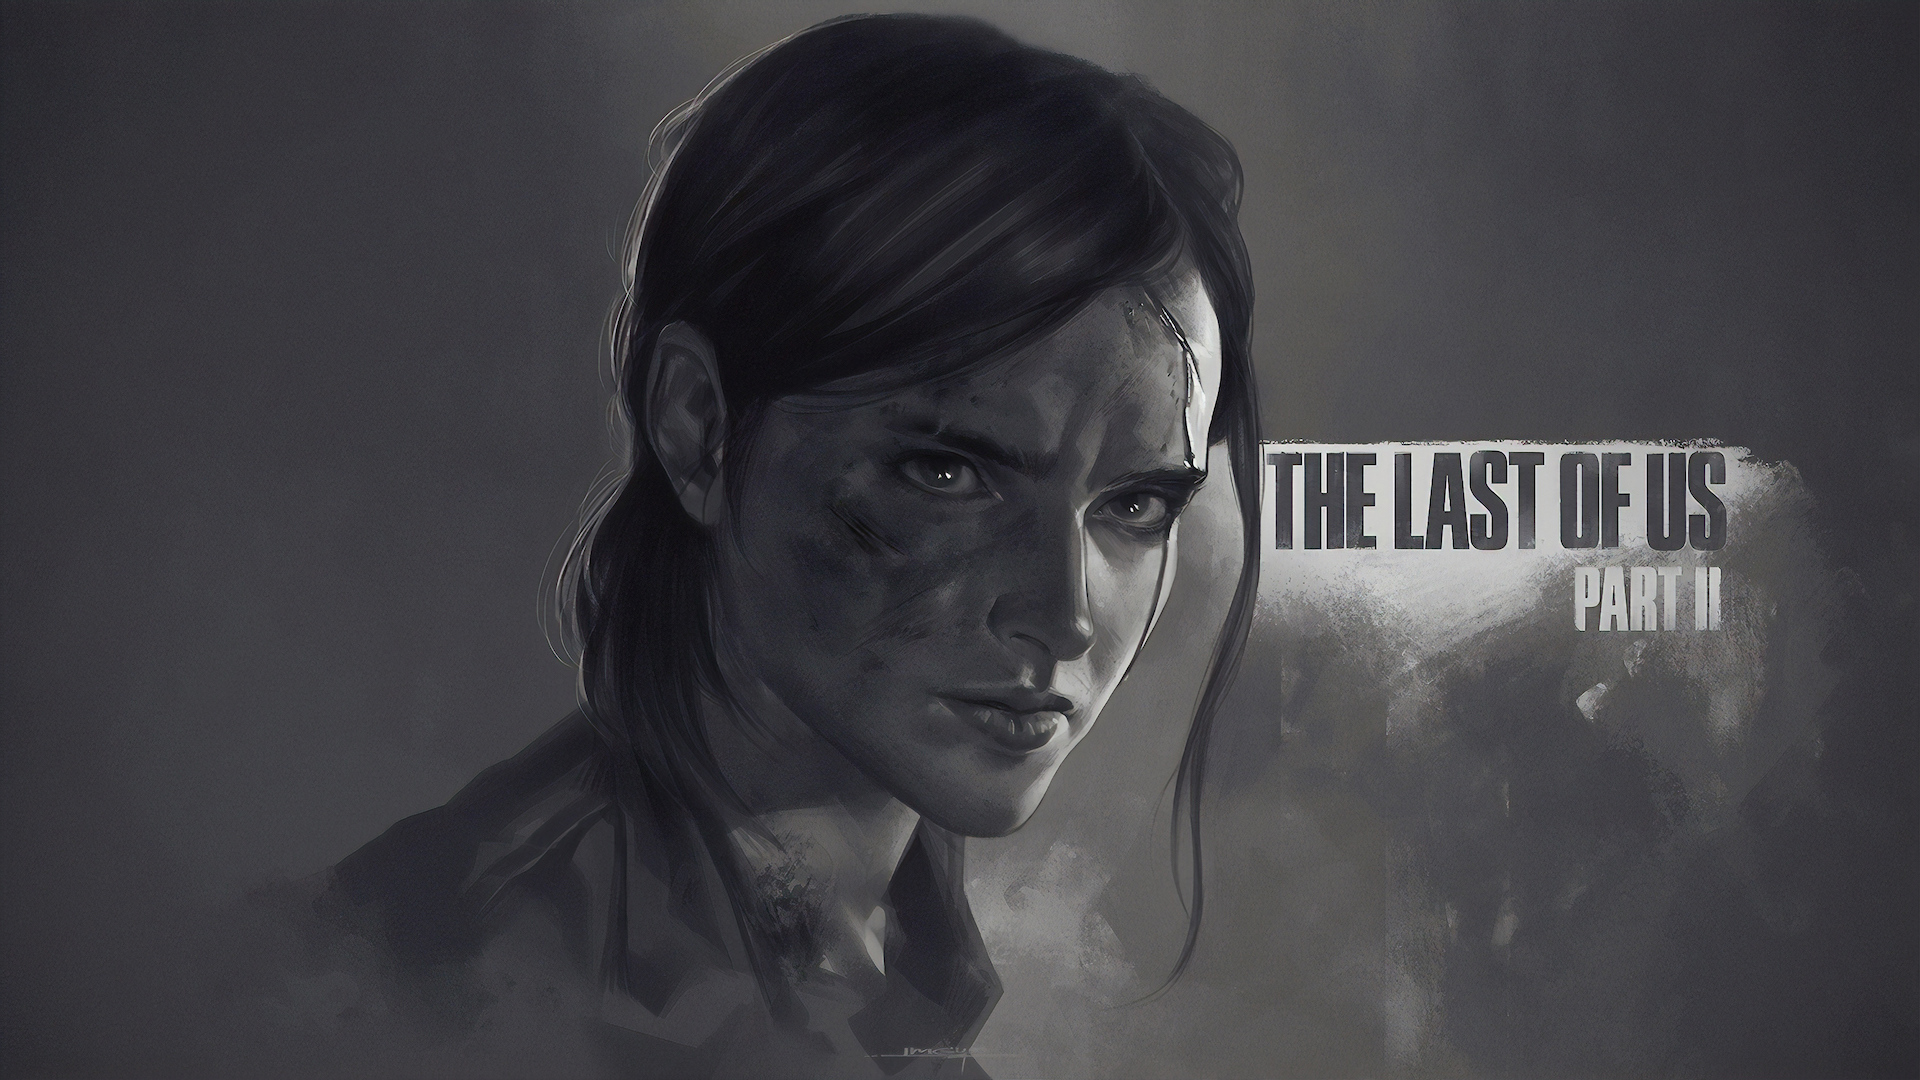 The Last of Us 2 vietato in Medio Oriente